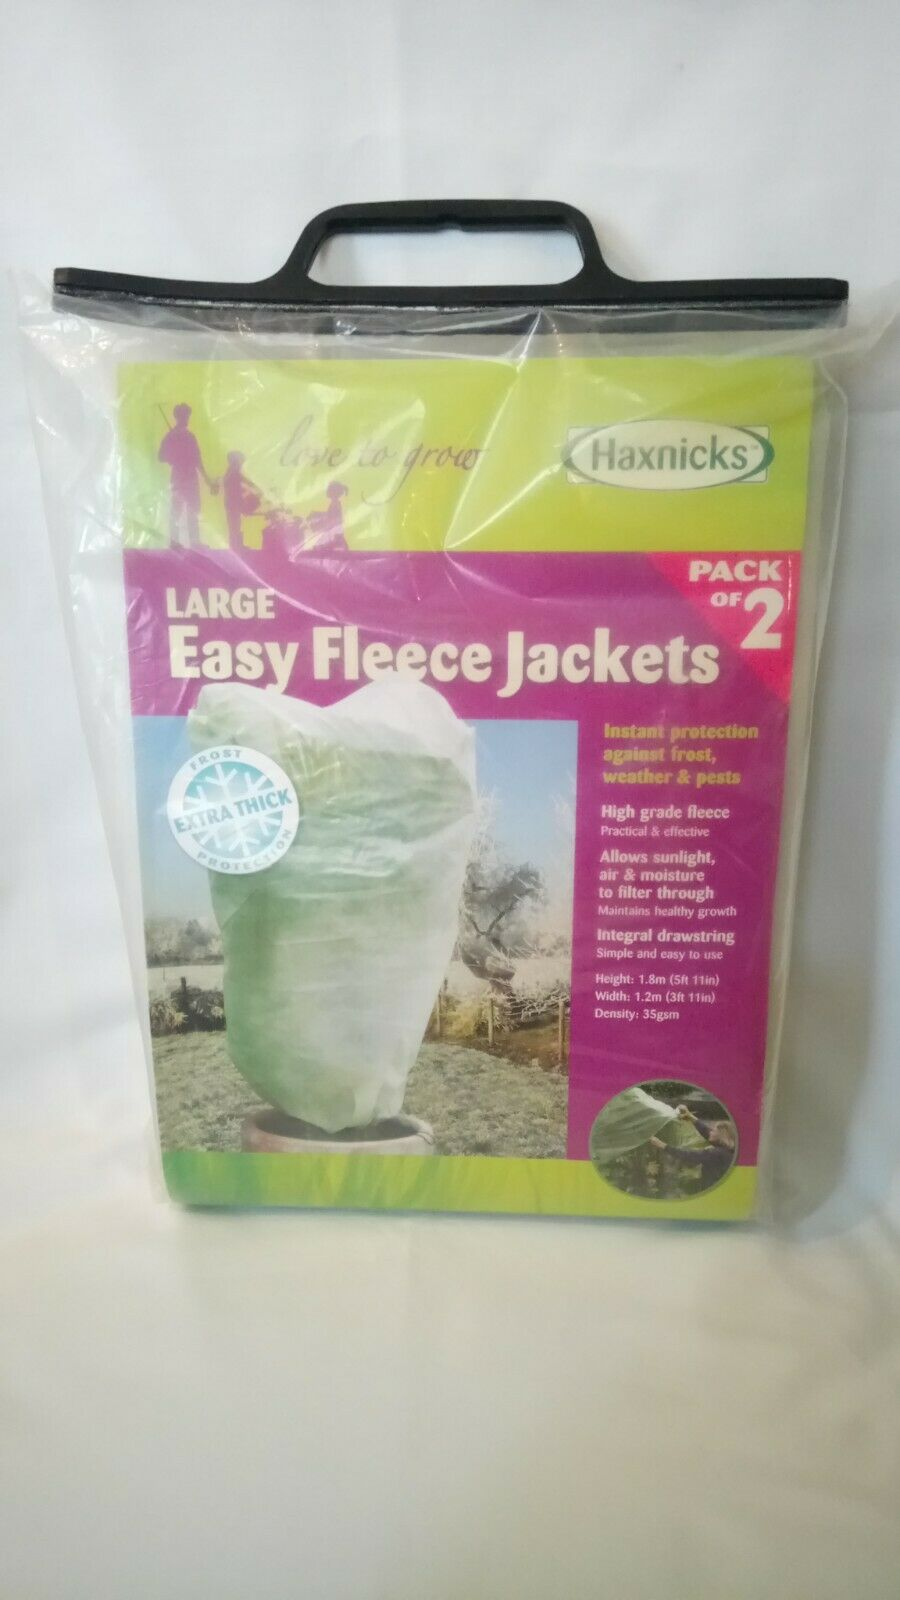 LAST ONE! Haxnicks Large Size Easy Fleece Jackets (Pack of 2)